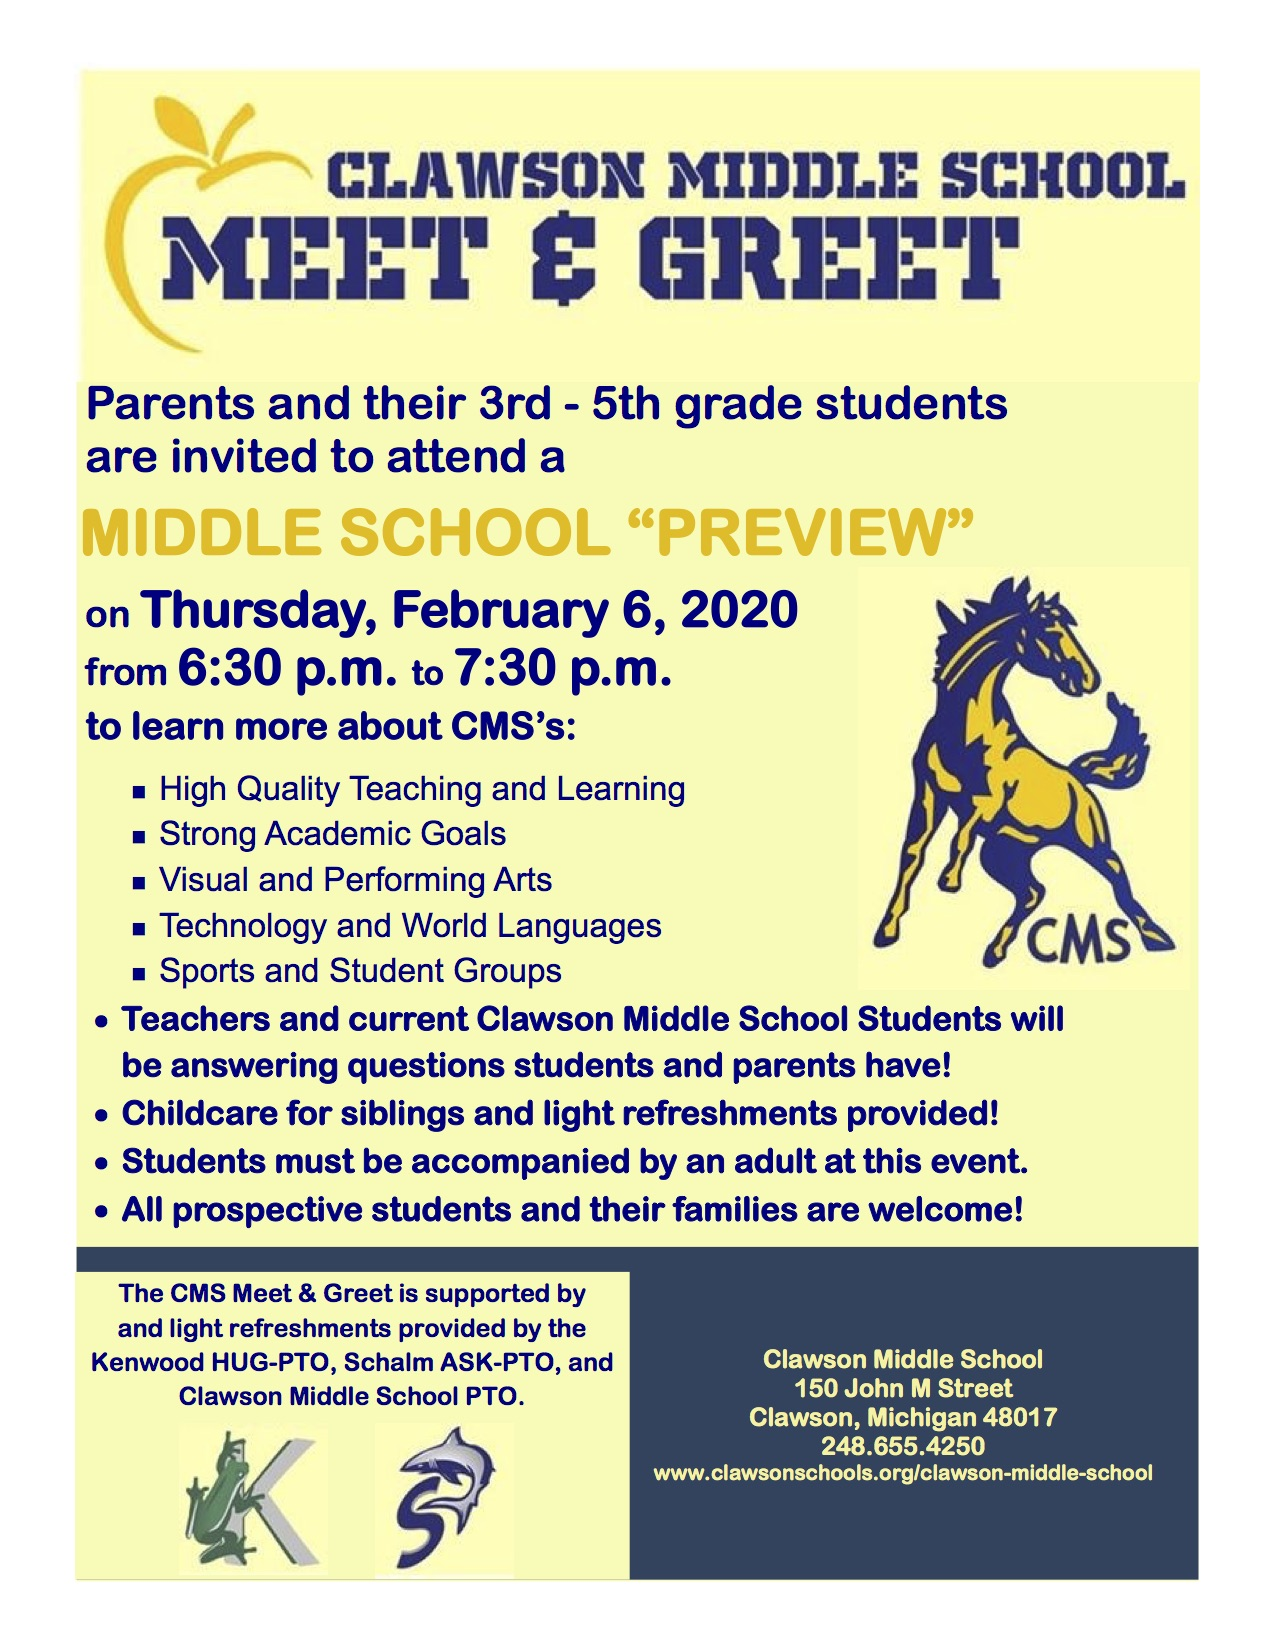 Clawson Middle School Meet and Greet on Thursday, February 6th, 2020 from 6:30 p.m. to 7:30 p.m. to learn more about CMS's: High Quality Teaching and Learning Strong Academic Goals Visual and Performing Arts Technology and World Languages Sports and Student Groups Teachers and current Clawson Middle School Students will be answering questions students and parents have! Childcare for siblings and light refreshments provided! Students must be accompanied by an adult at this event.  All prospective students and their families are welcome!